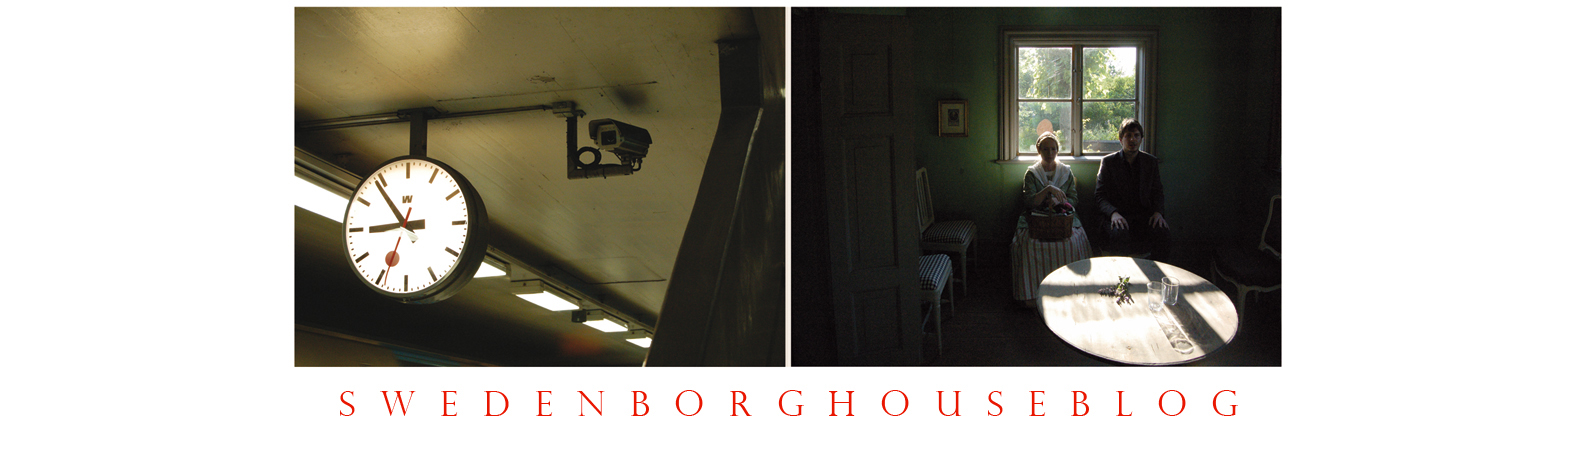 swedenborg house blog